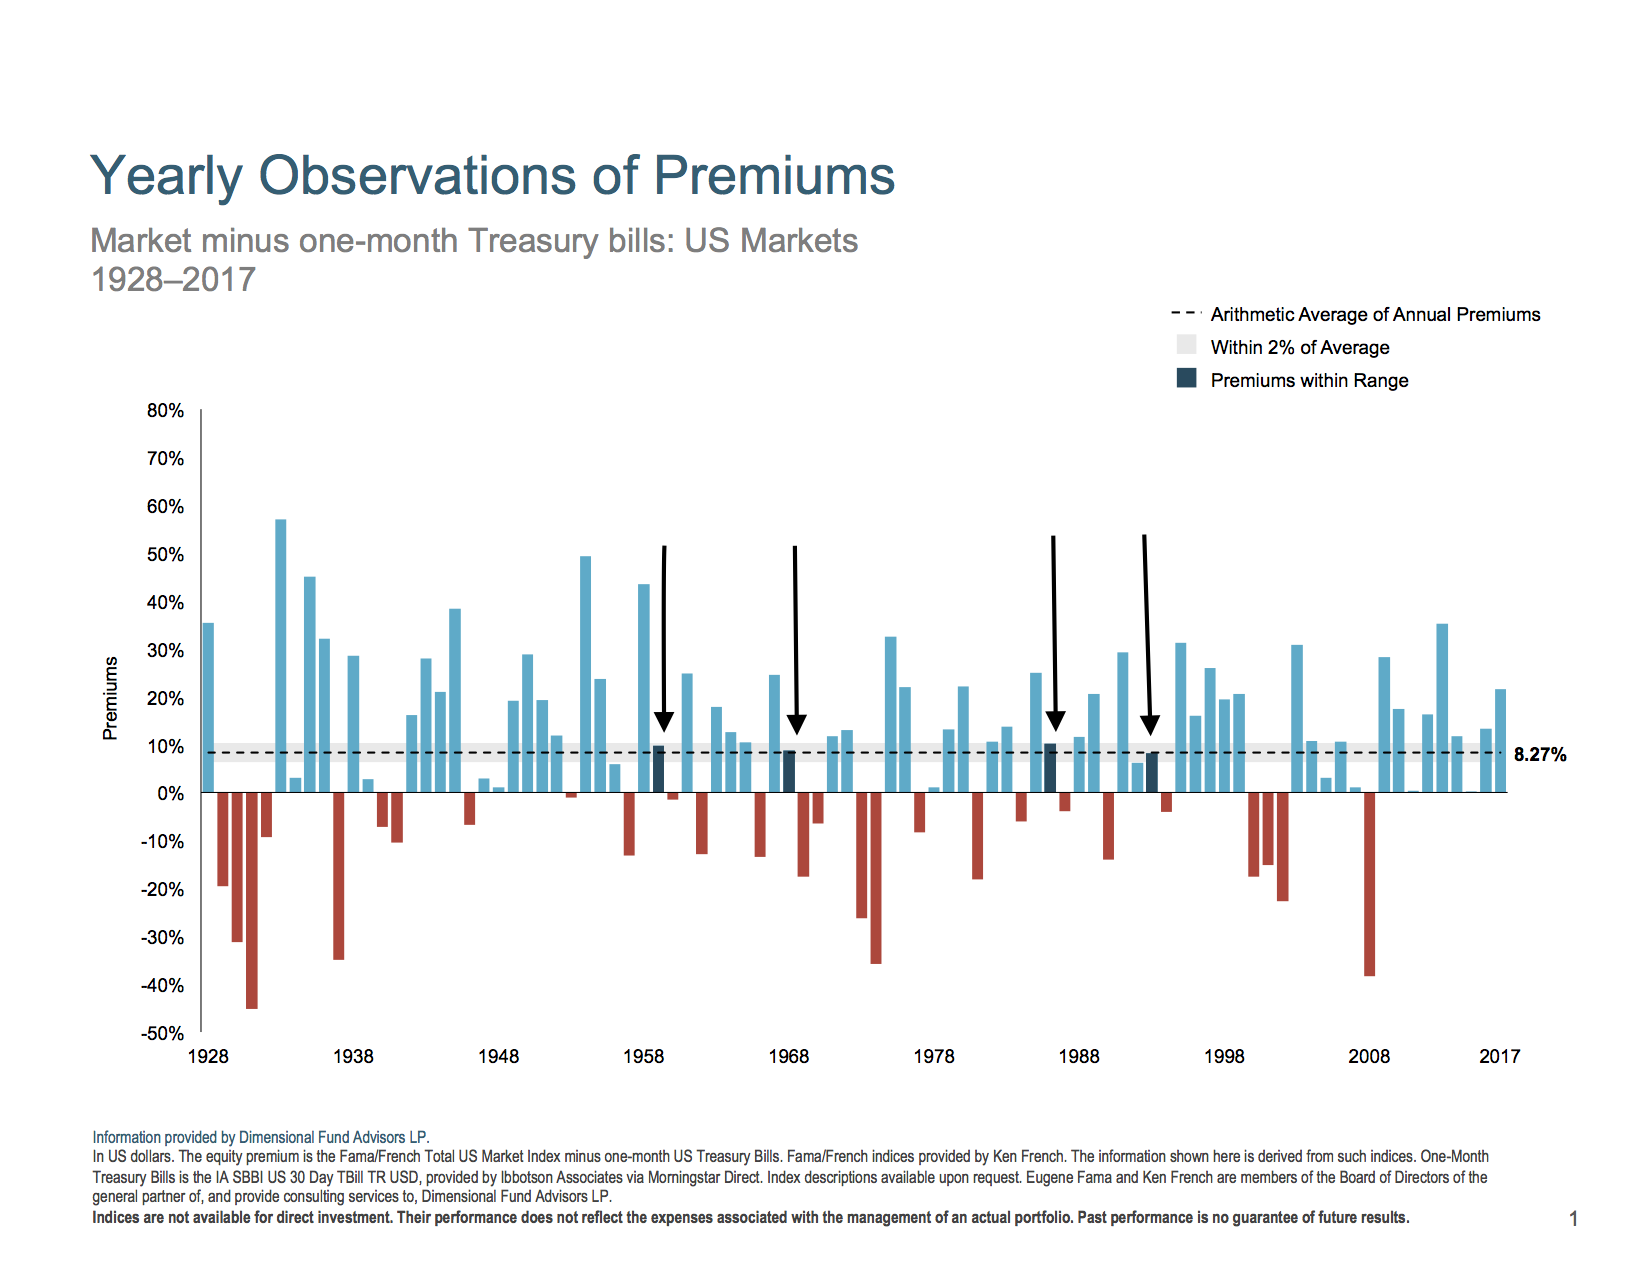 Yearly observation of premiums.  US stock market minus one-month treasury bills.  1928 to 2017.